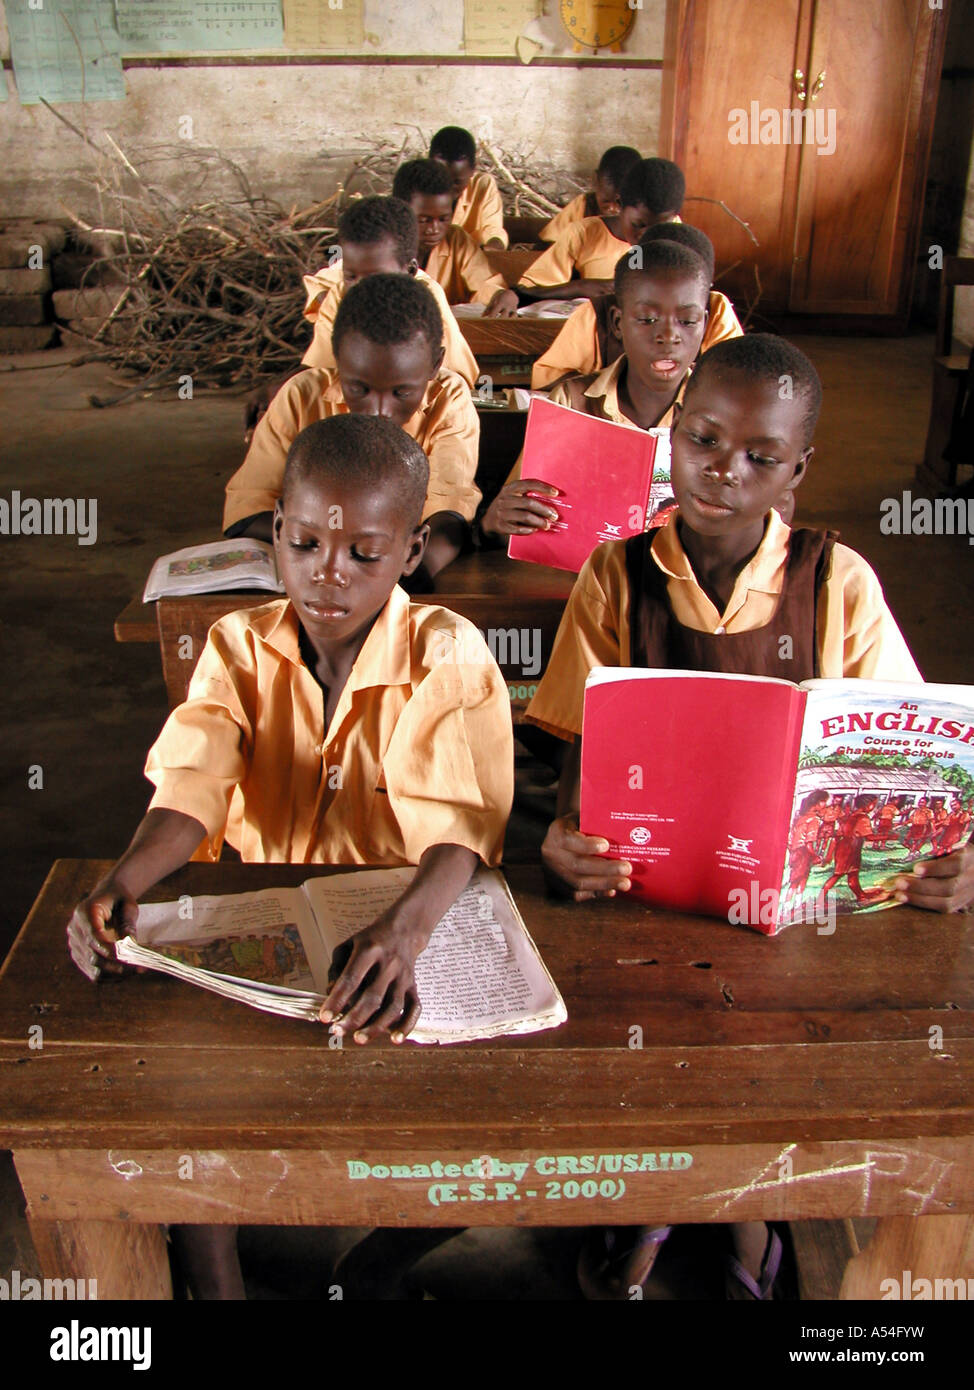 Painet hn2247 7829 children boys ghana school supported by crs bolgatanga country developing nation less economically - Stock Image